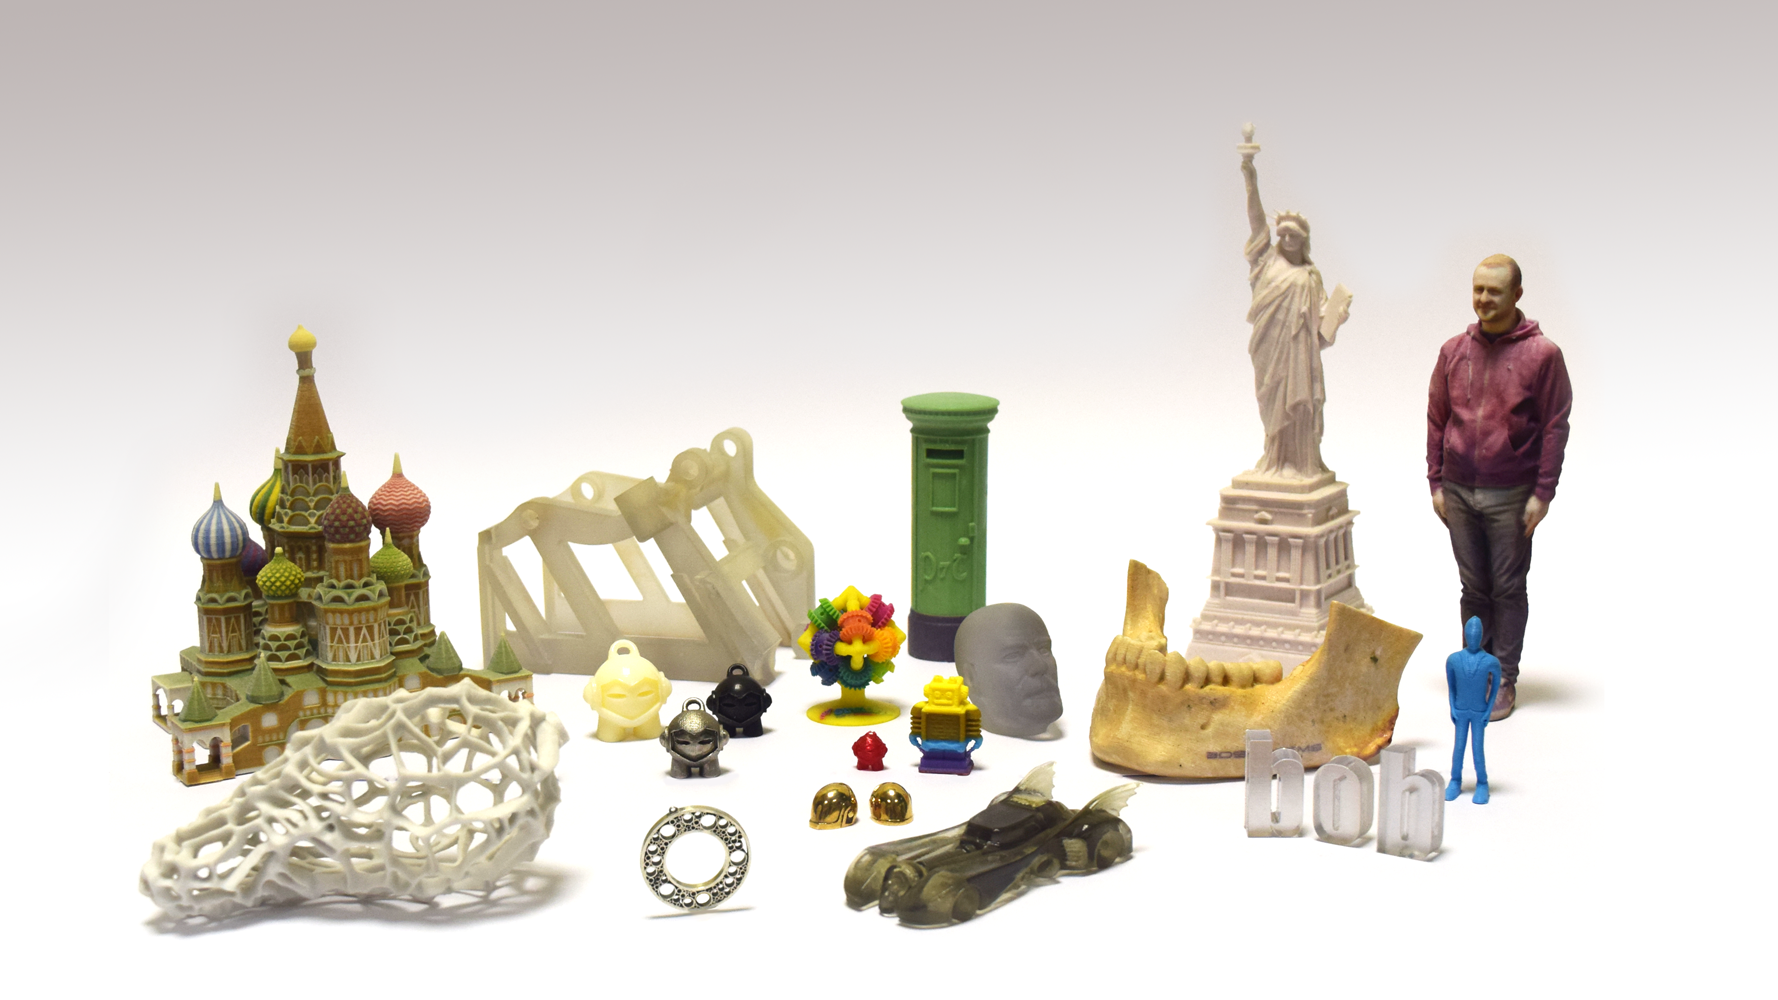 Stratasys Objet 30 Pro polyjet printing, 3D Systems Projet 480 Full colour powder print, 3D Scanning, Metal 3D Printing, Jewellery, Bespoke Models, Engineering, Architectural, Medical